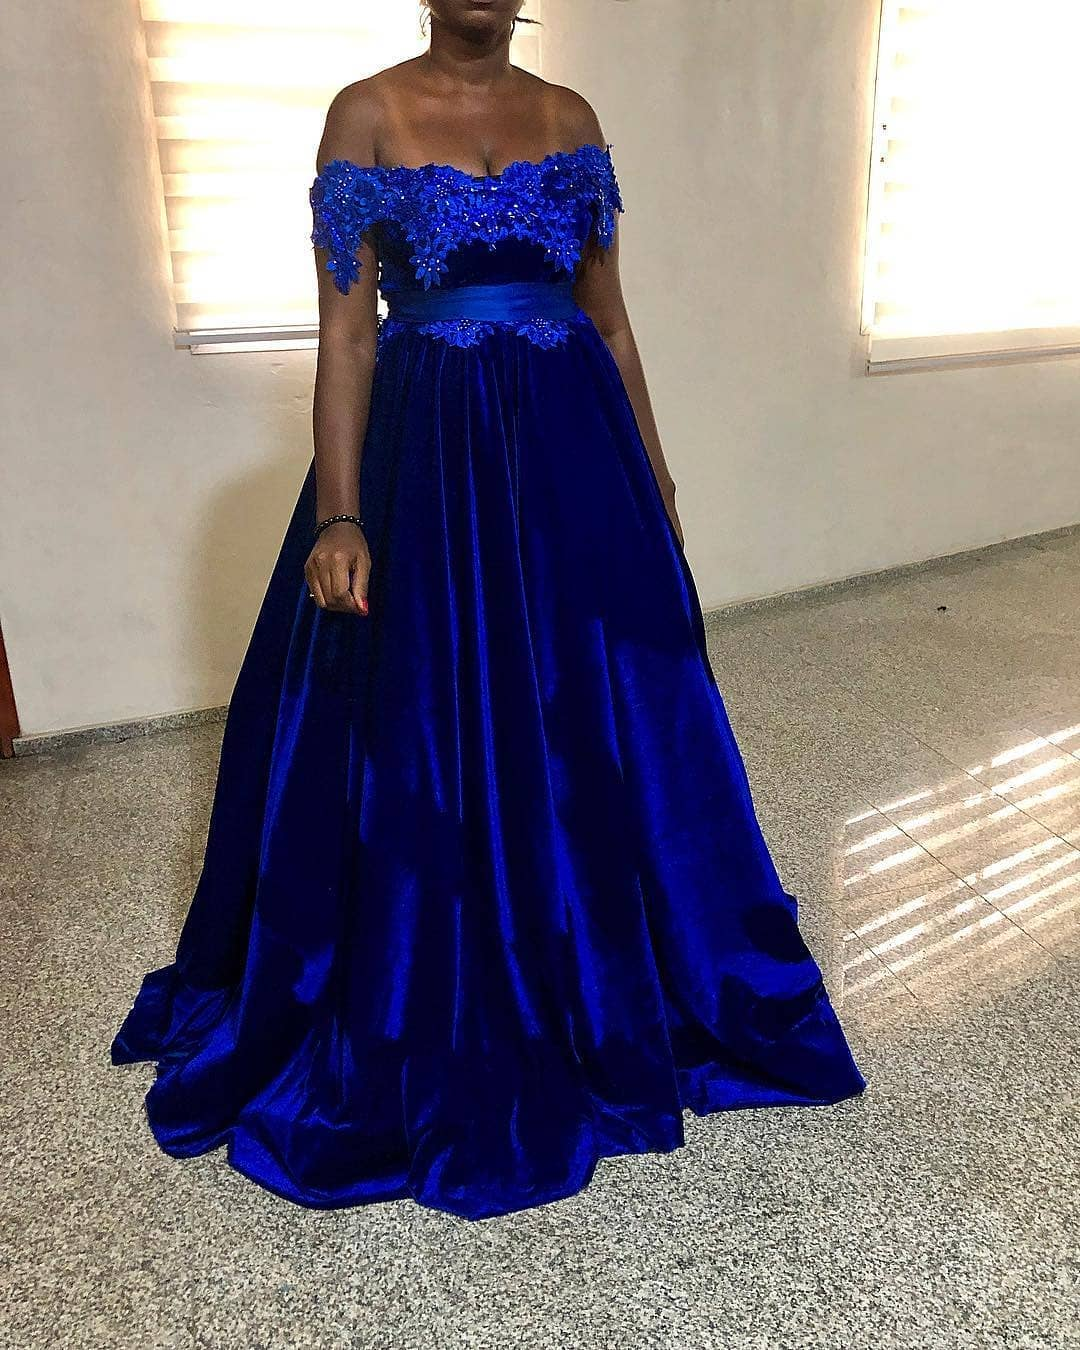 Royal Blue Prom Dress Off Shoulder Lace Appliques Beaded Velvet Plus Size  African Formal Evening Dresses Custom Sweep Train Party Gowns from better4u